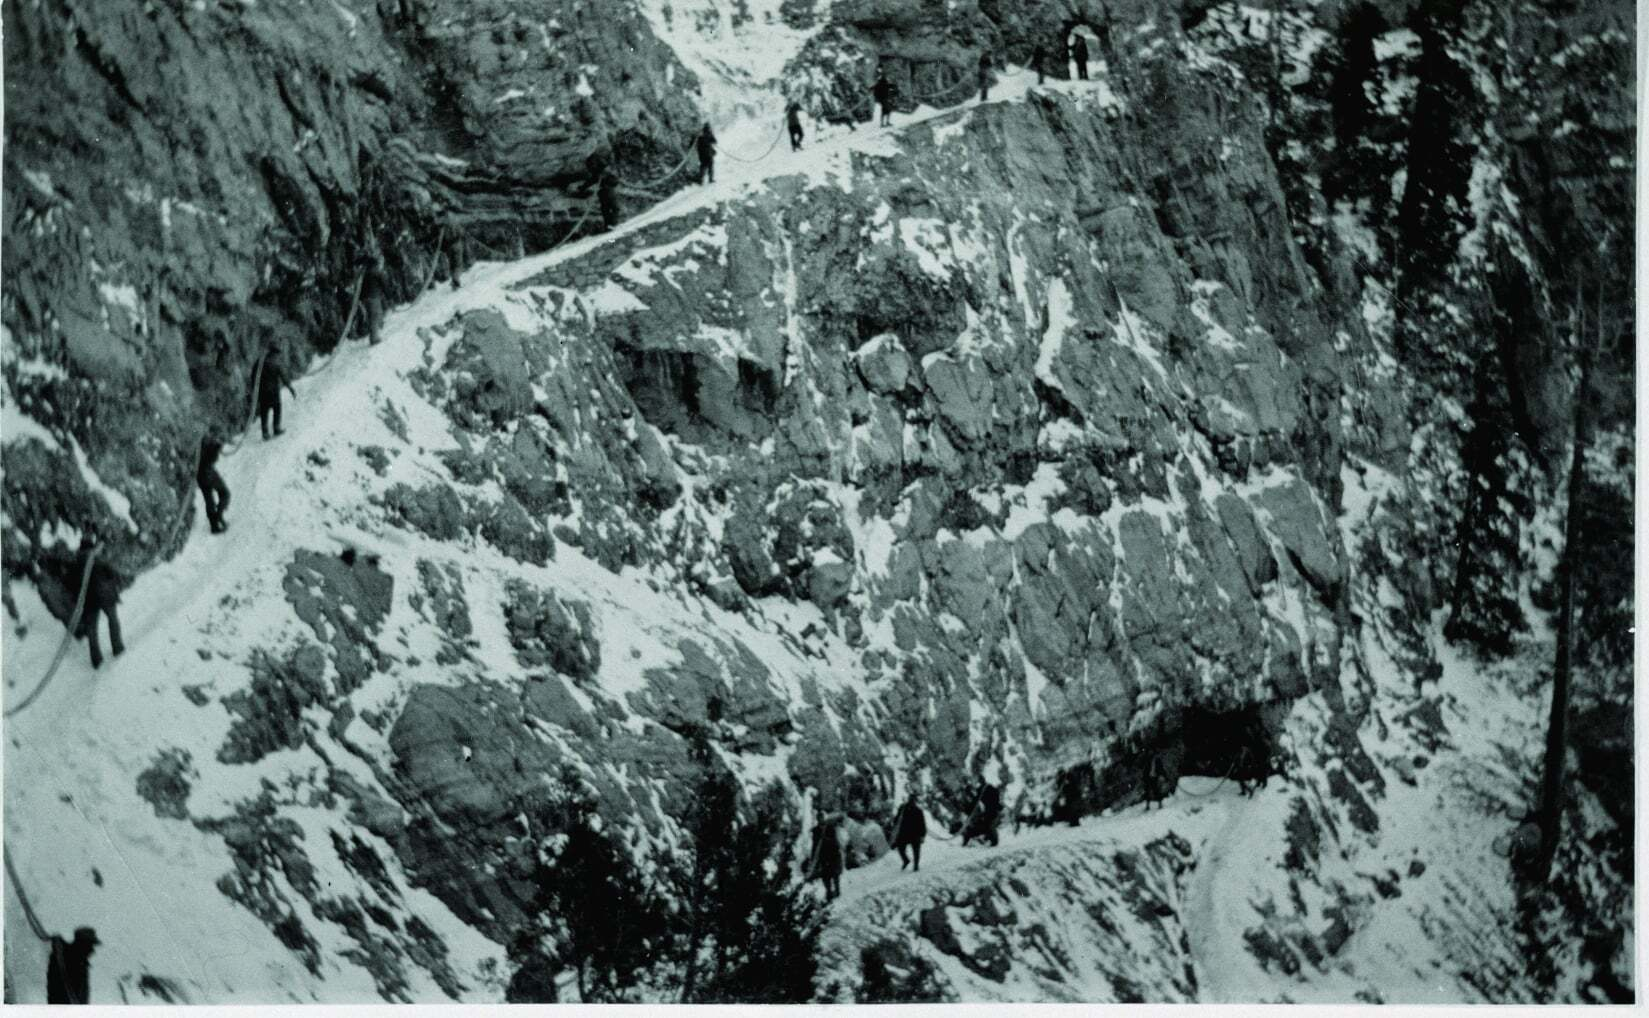 Photos: A look back at how electricity got to Timpanogos Cave